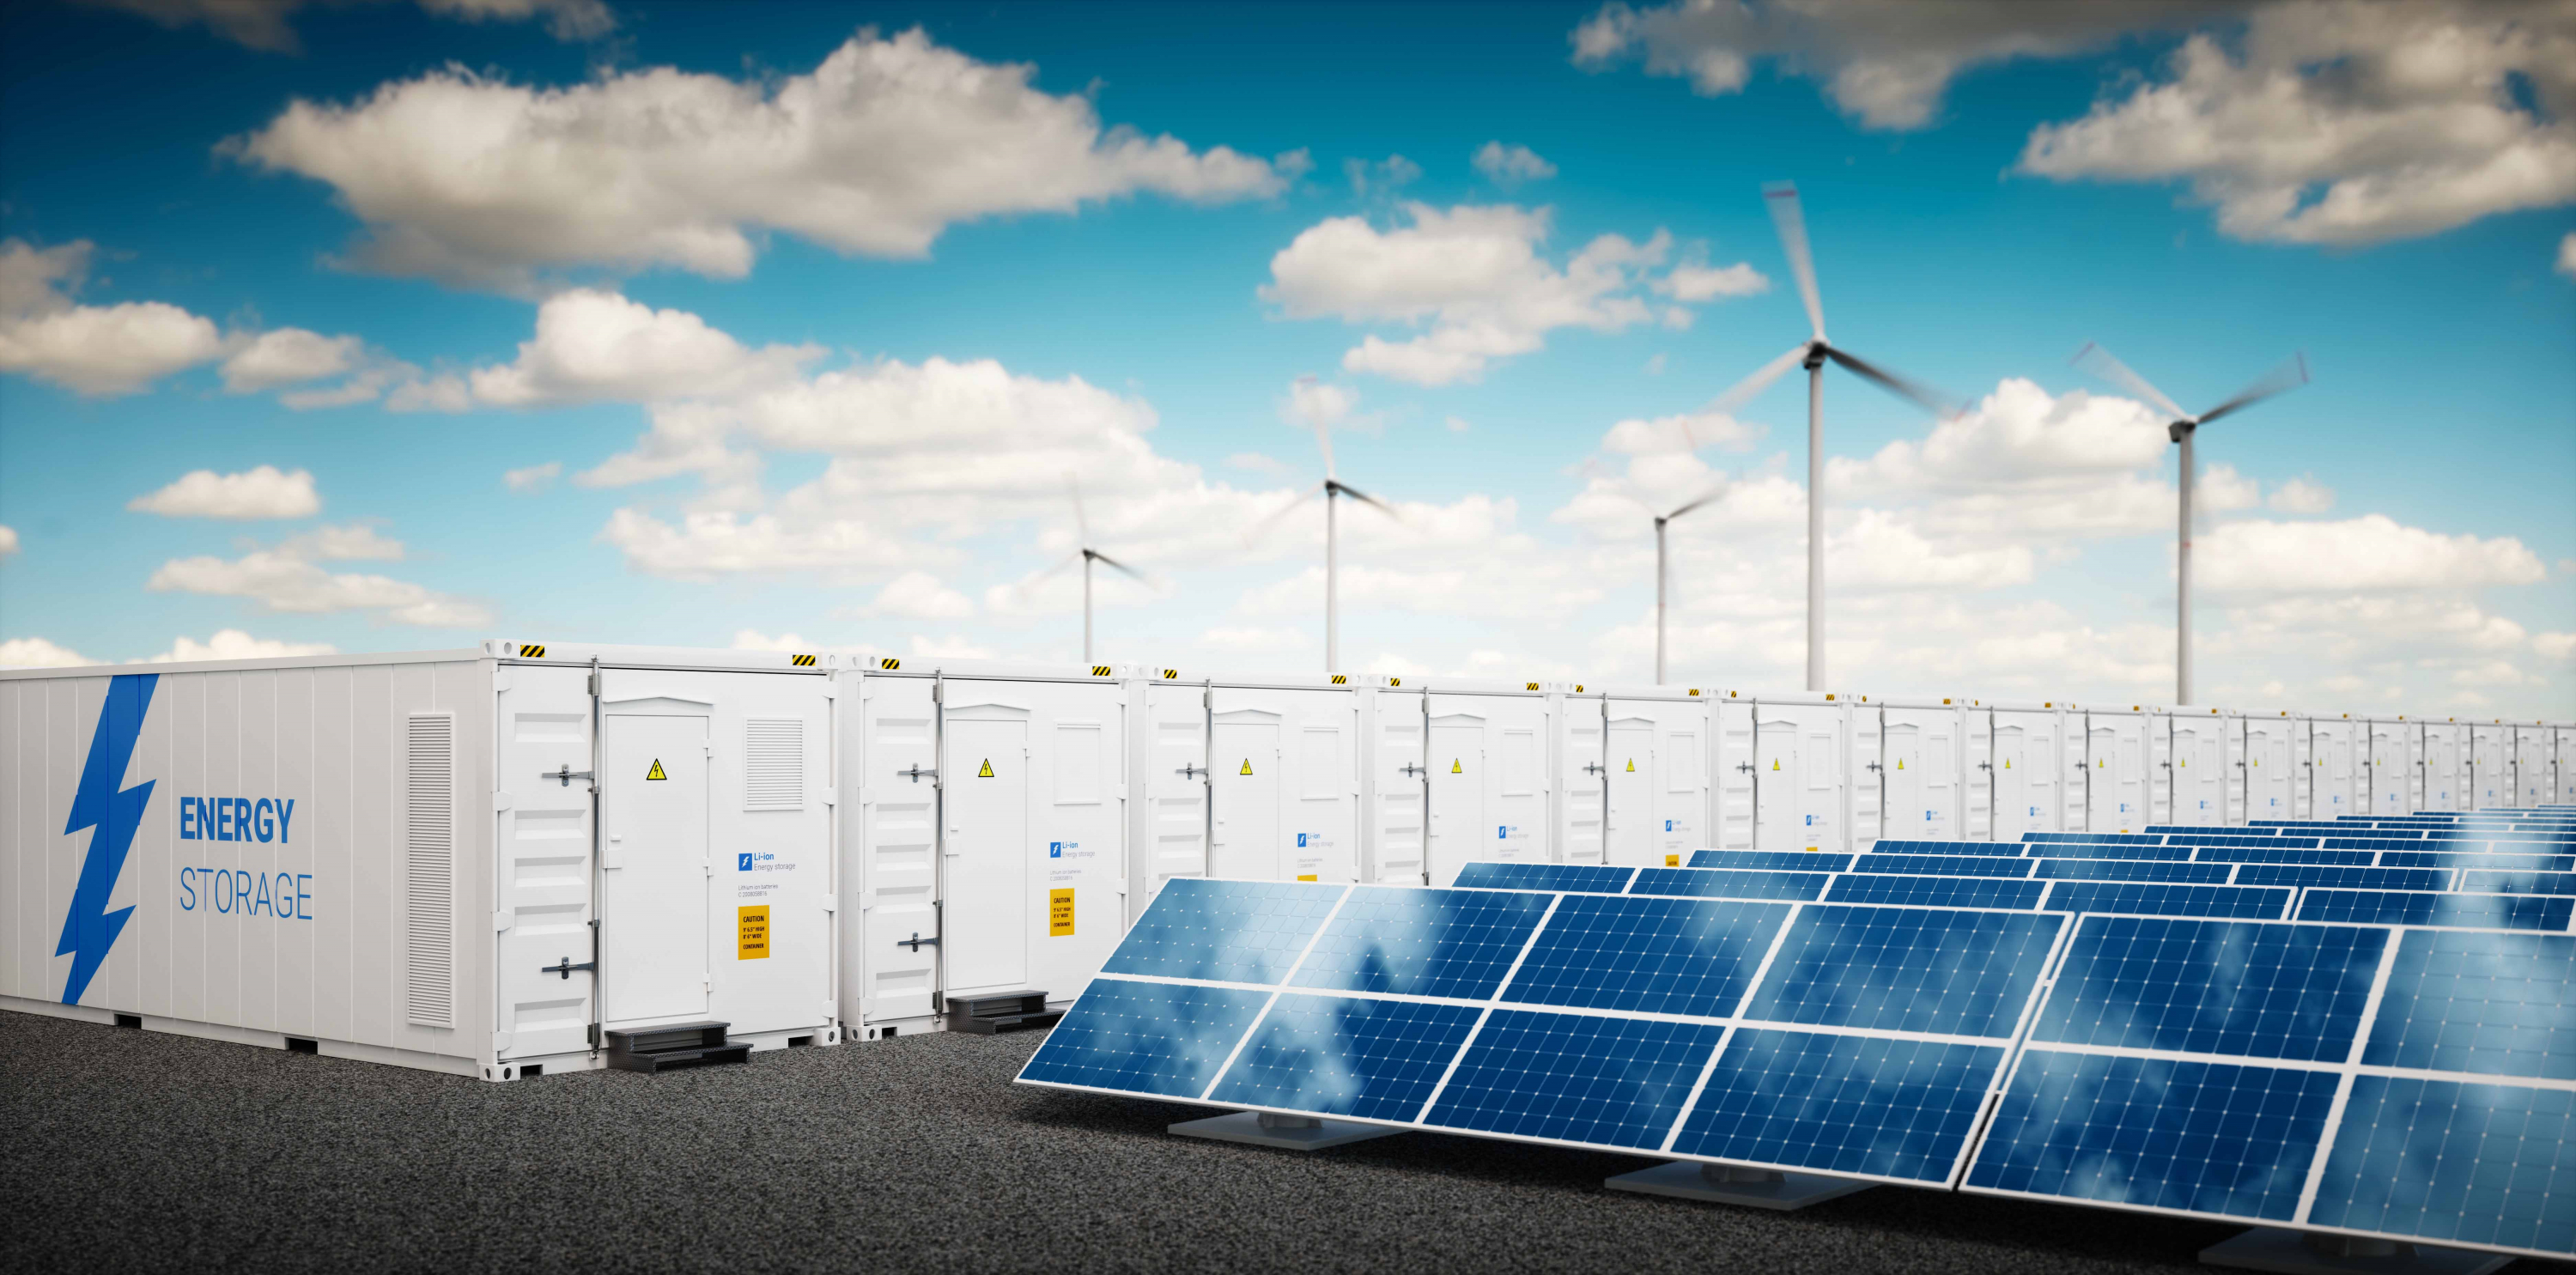 Abdul Latif Jameel Energy's FRV to develop energy storage projects globally